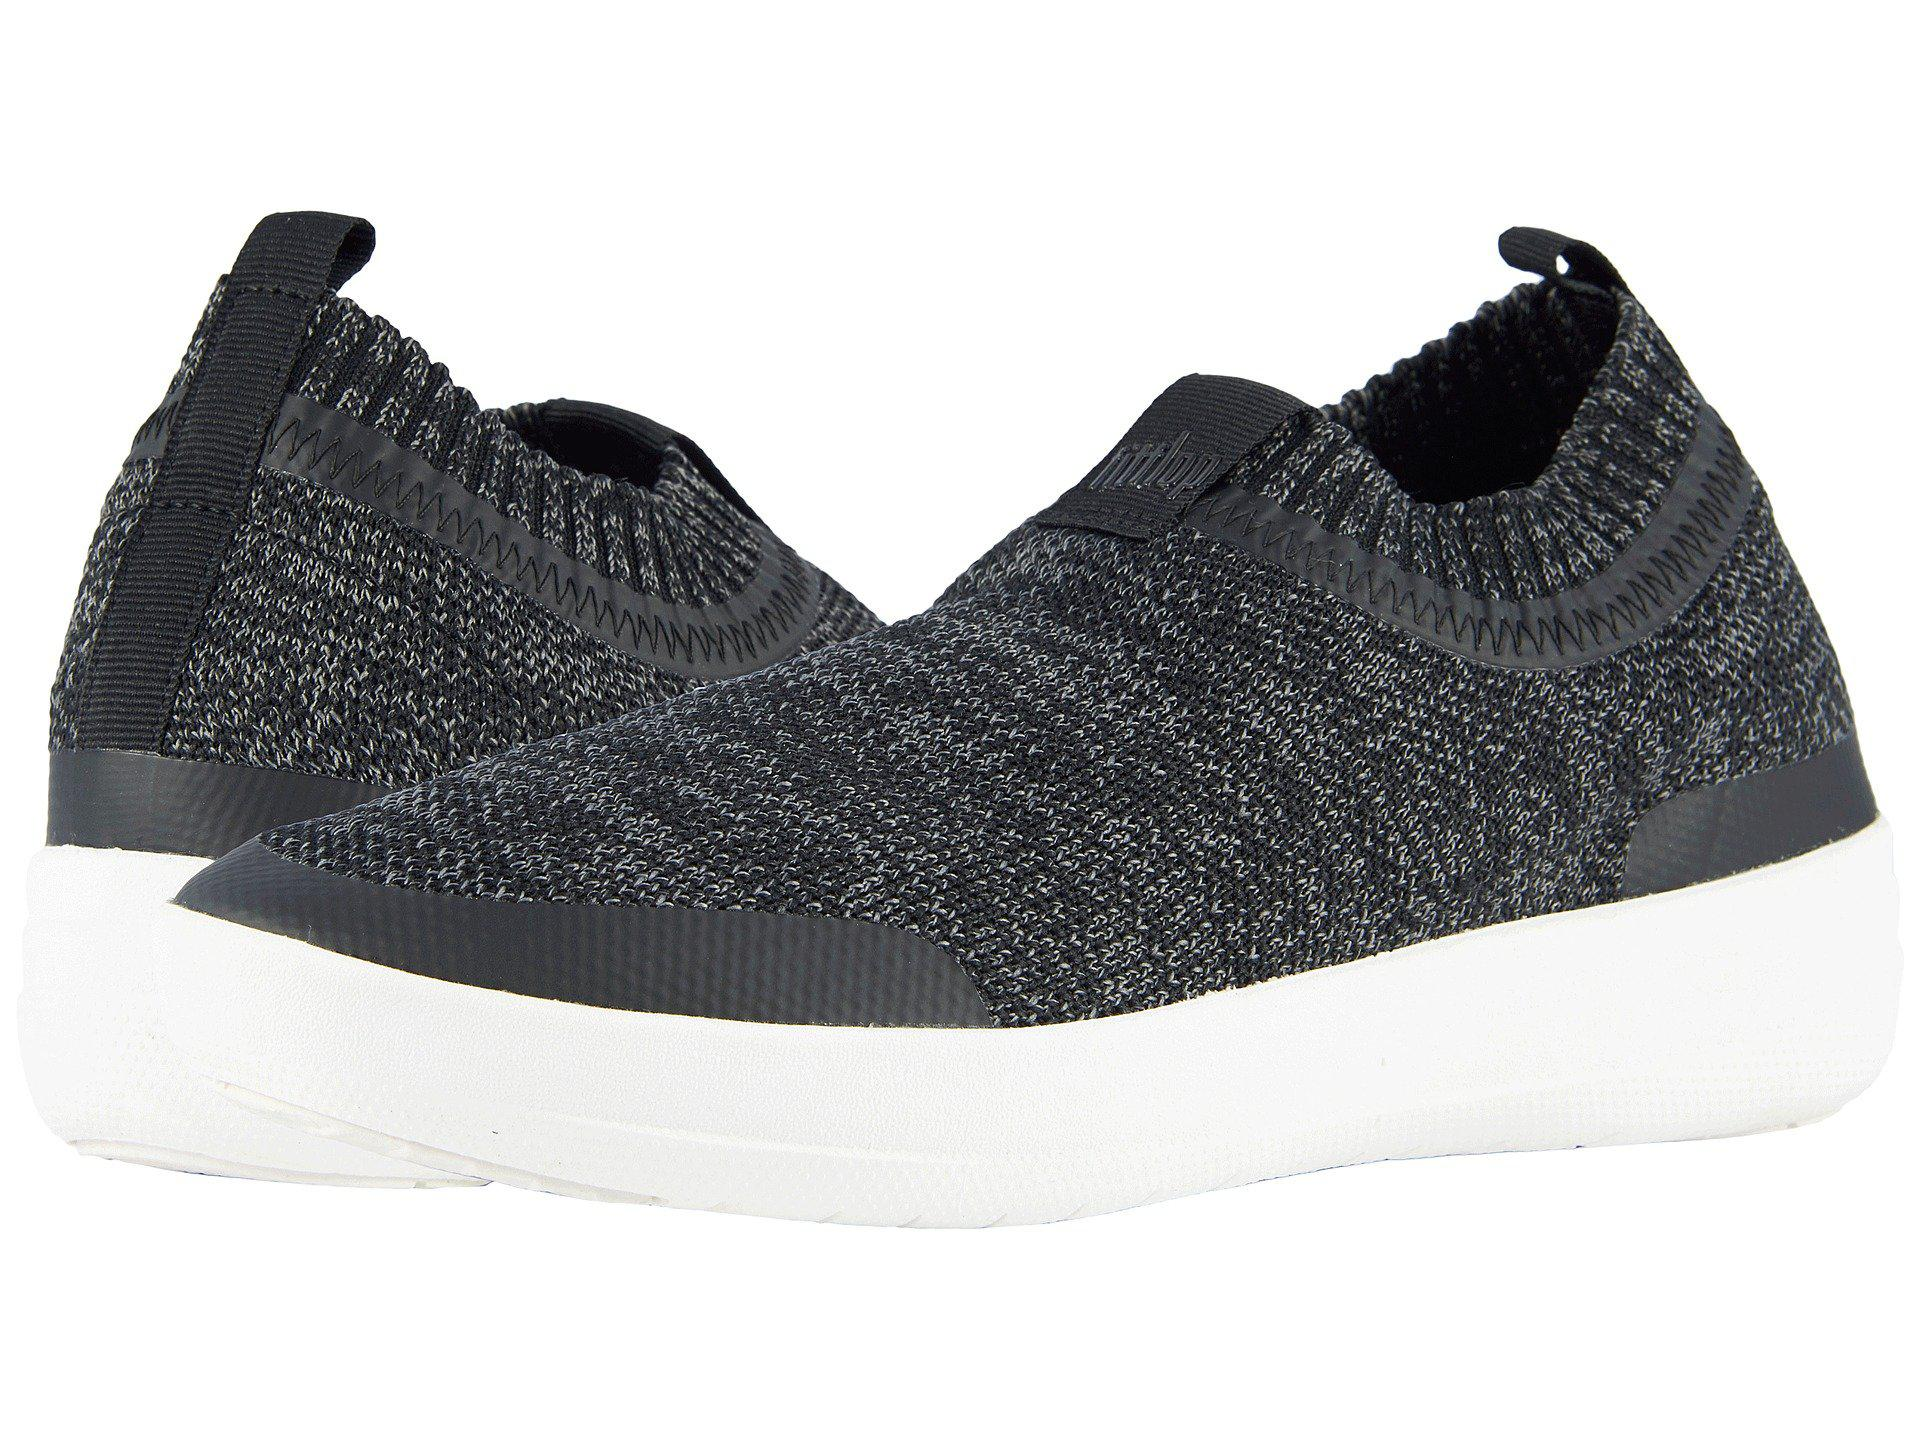 b6cd985b23396c Lyst - Fitflop Uberknit Slip-on Sneakers (black soft Grey) Women s ...